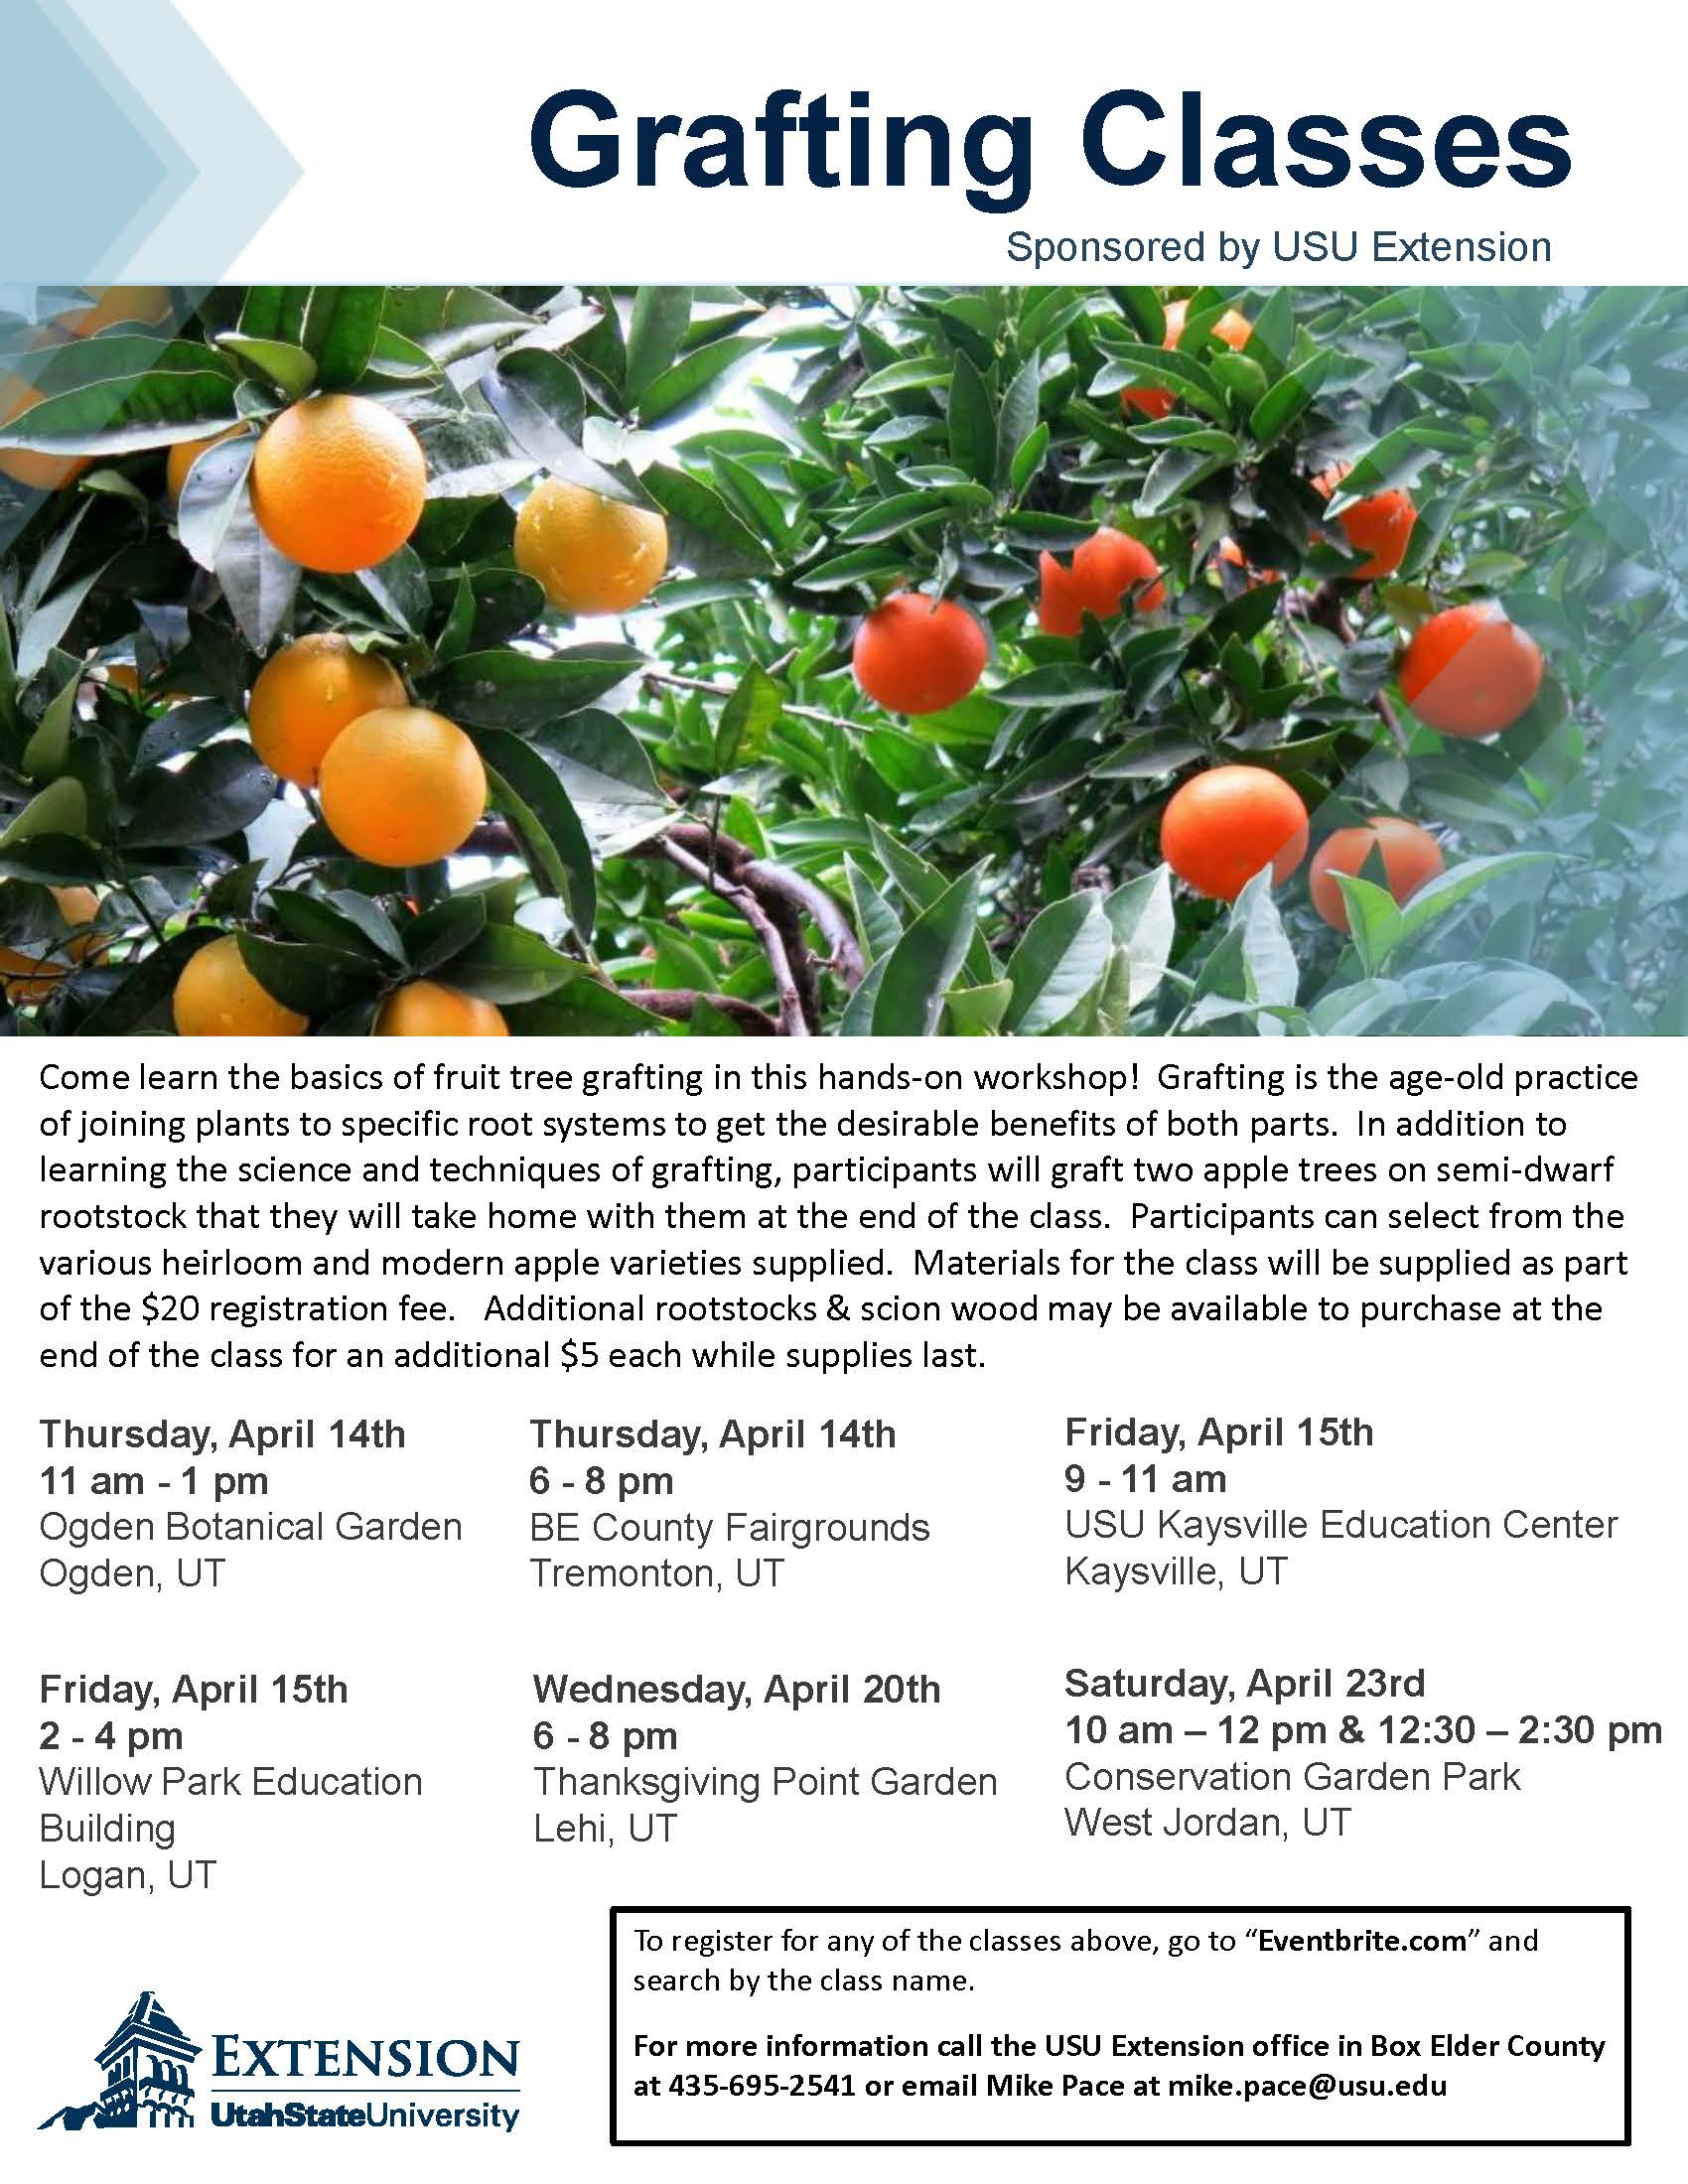 Sign Up For Classes At The Conservation Garden Park! CLICK HERE